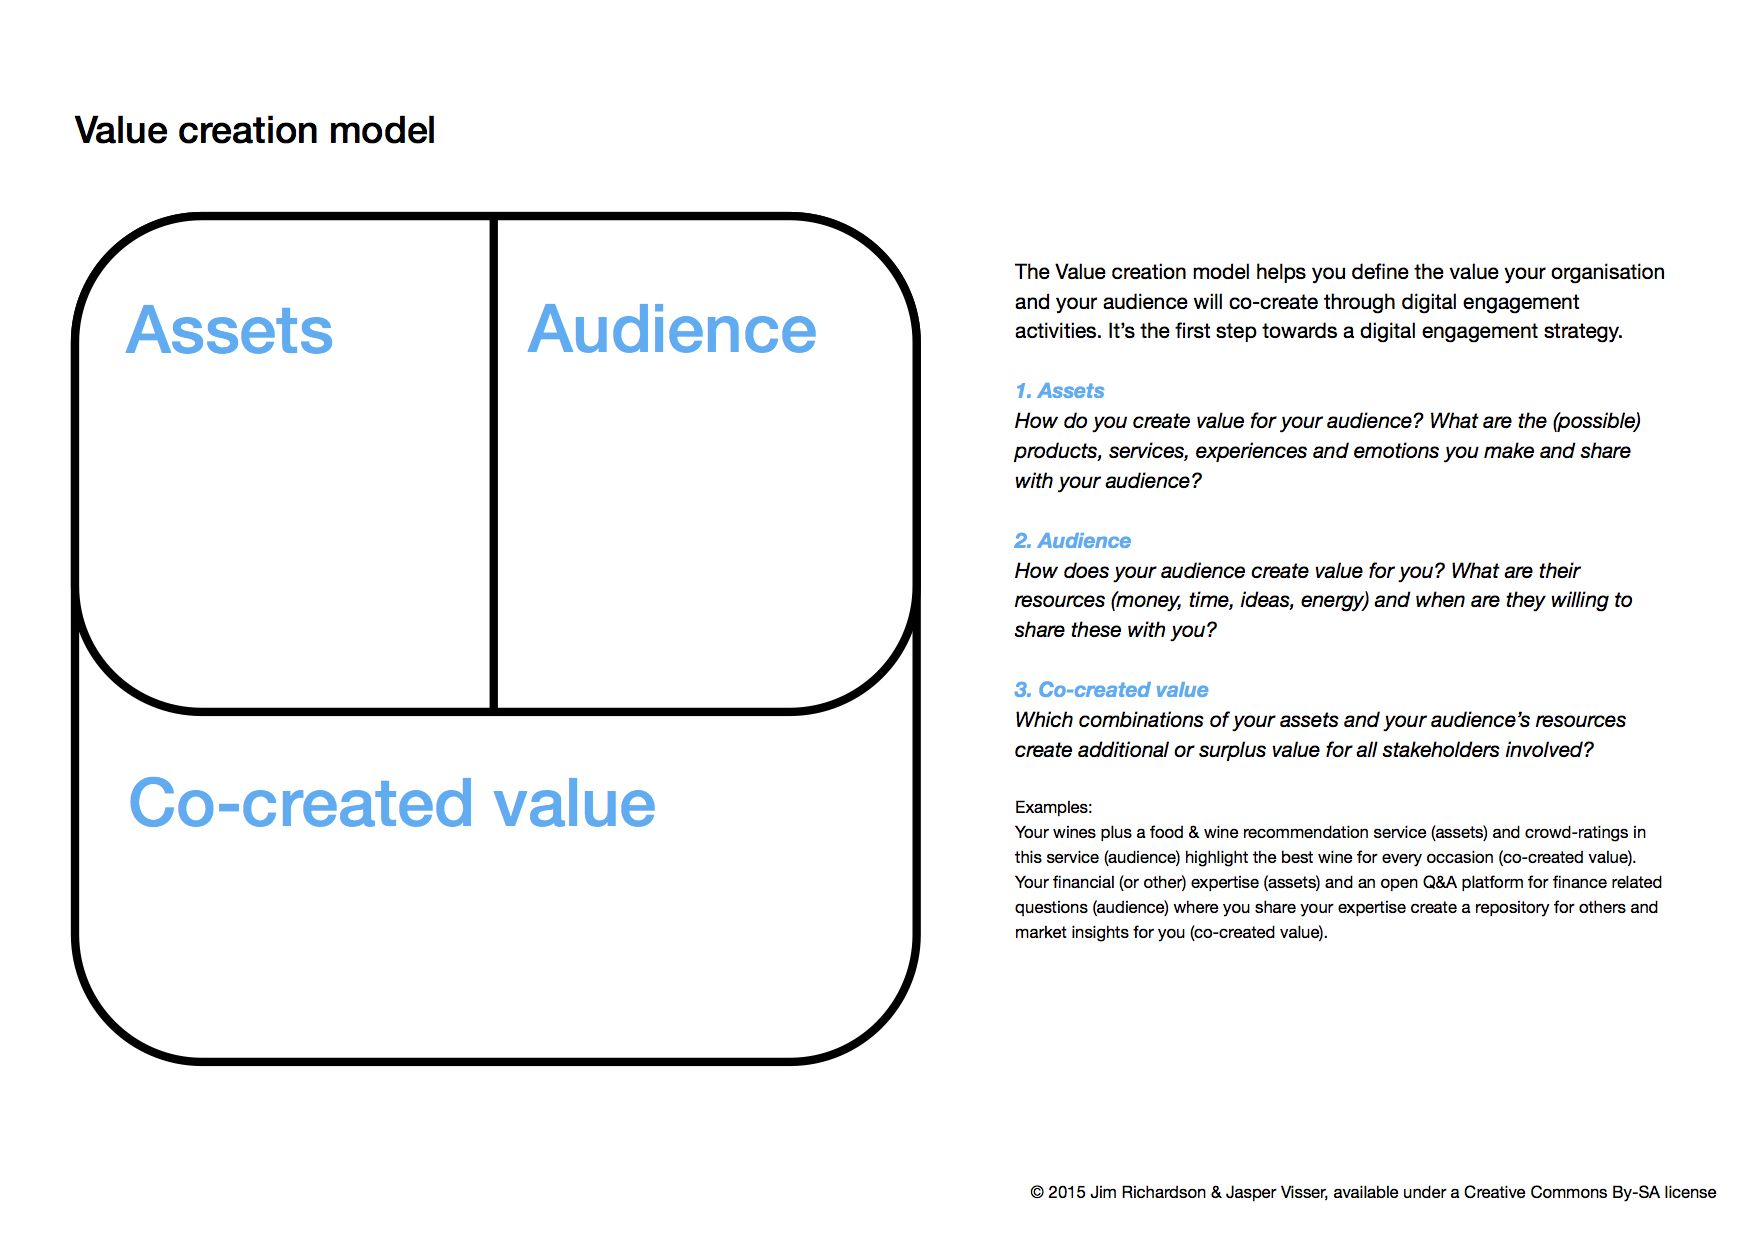 Value Creation Model Worksheet